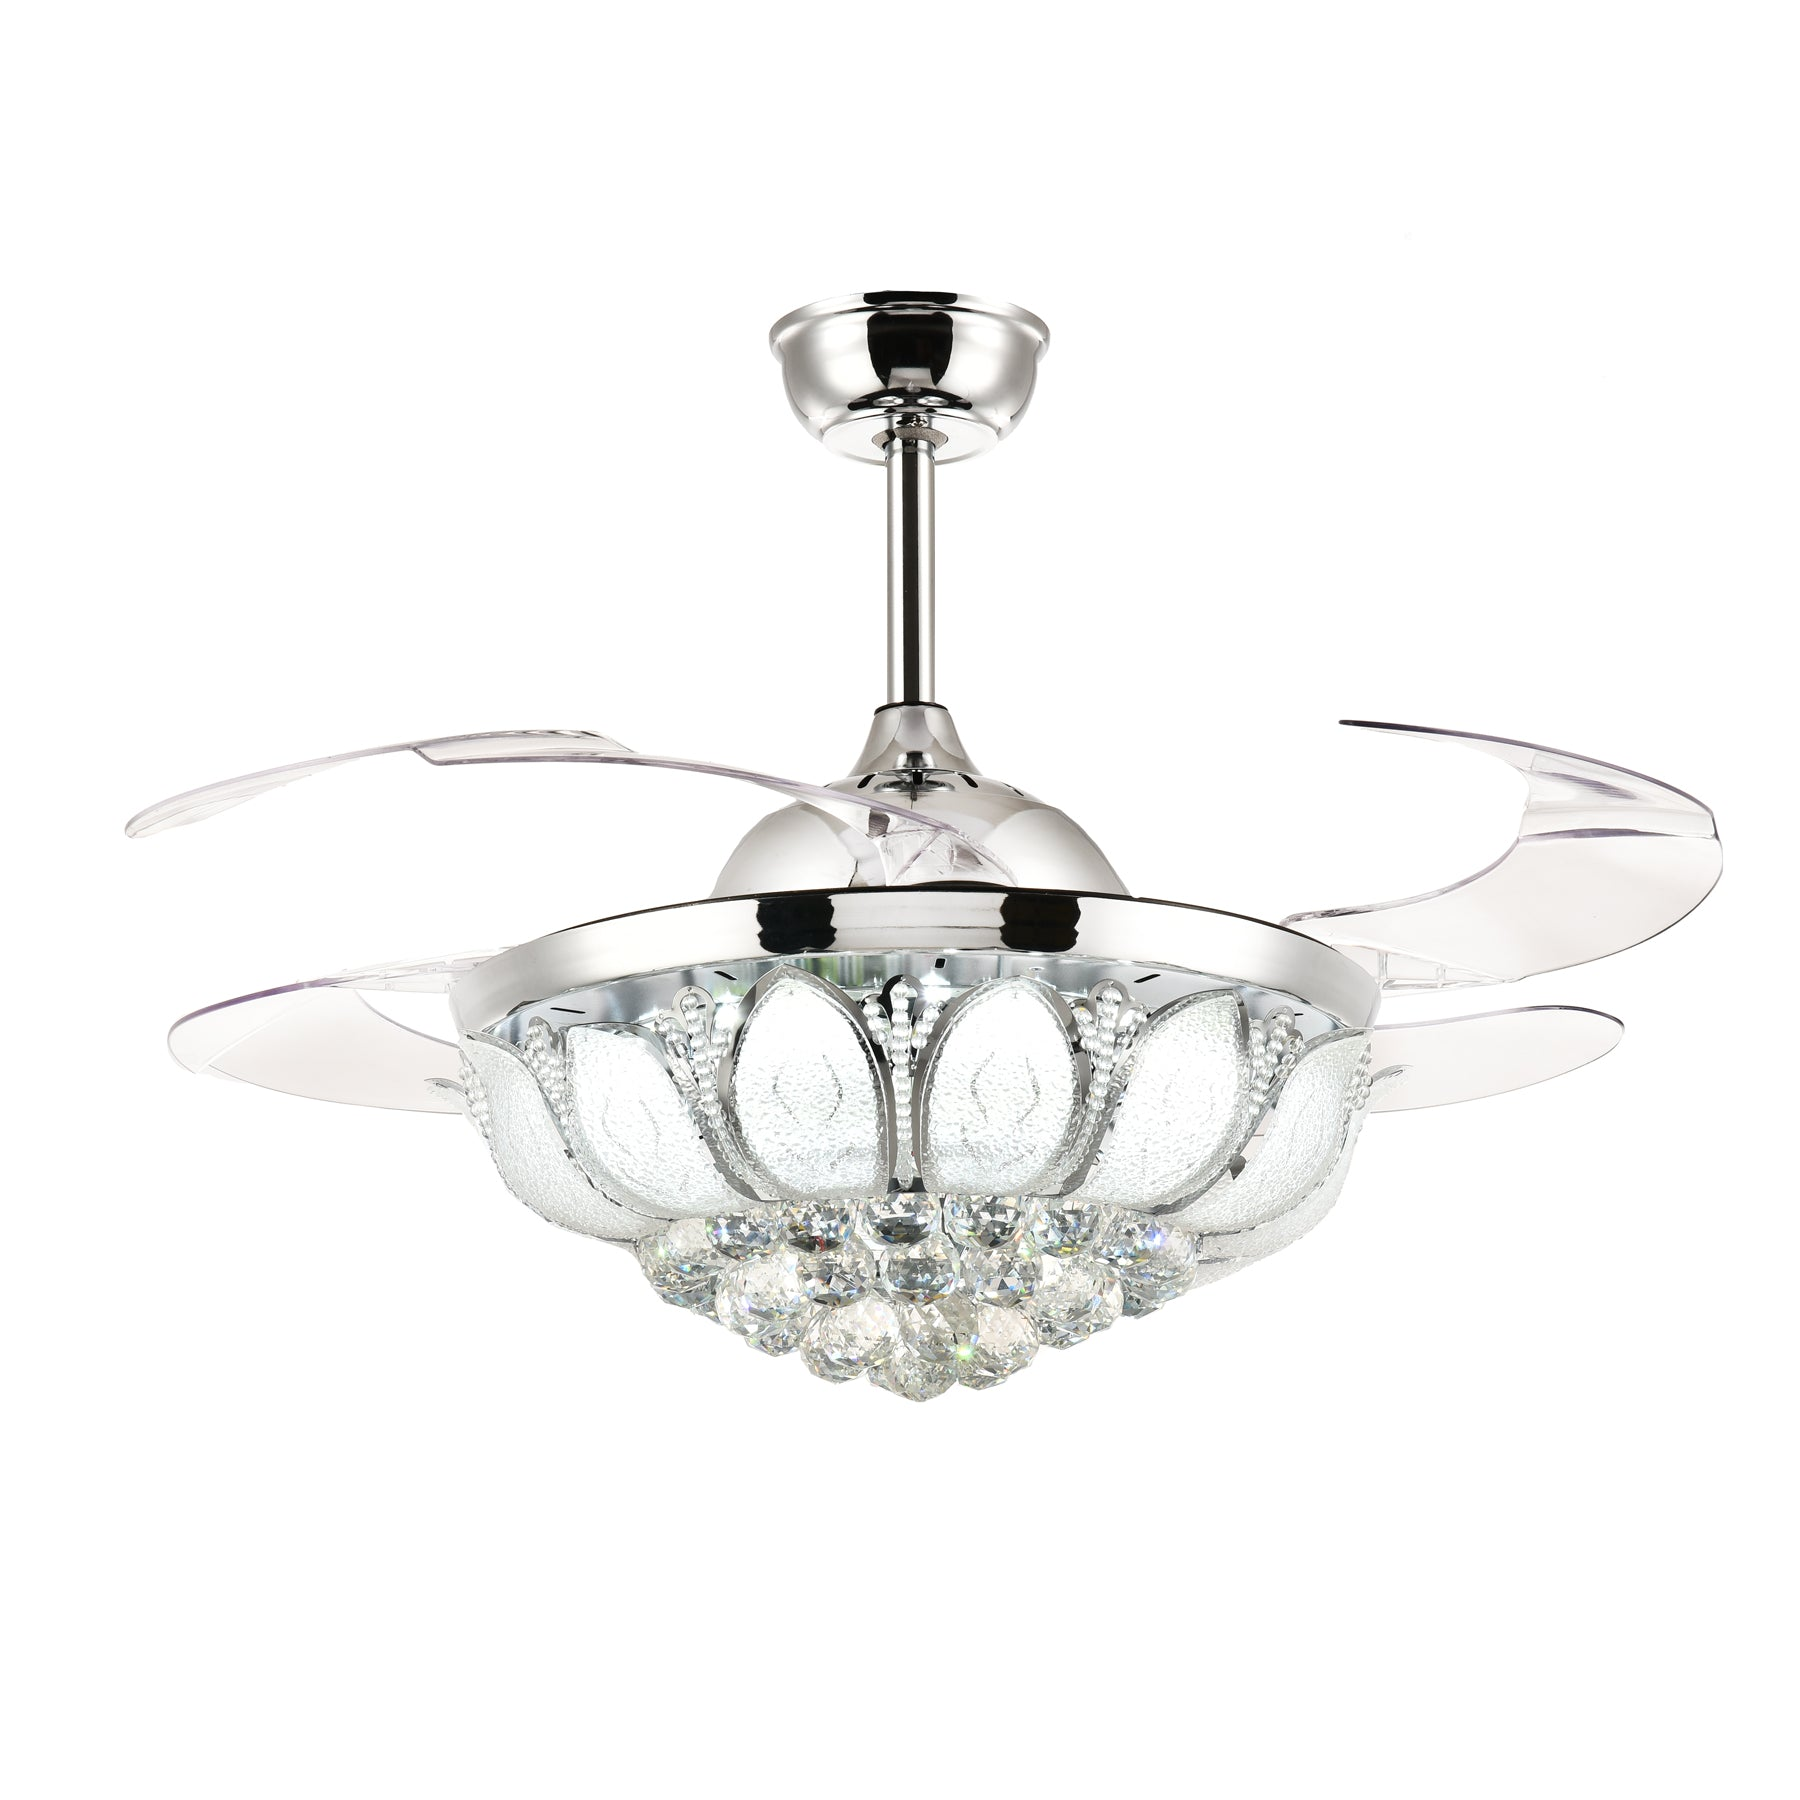 Polished Crystal Ceiling Fan With Blades Extended